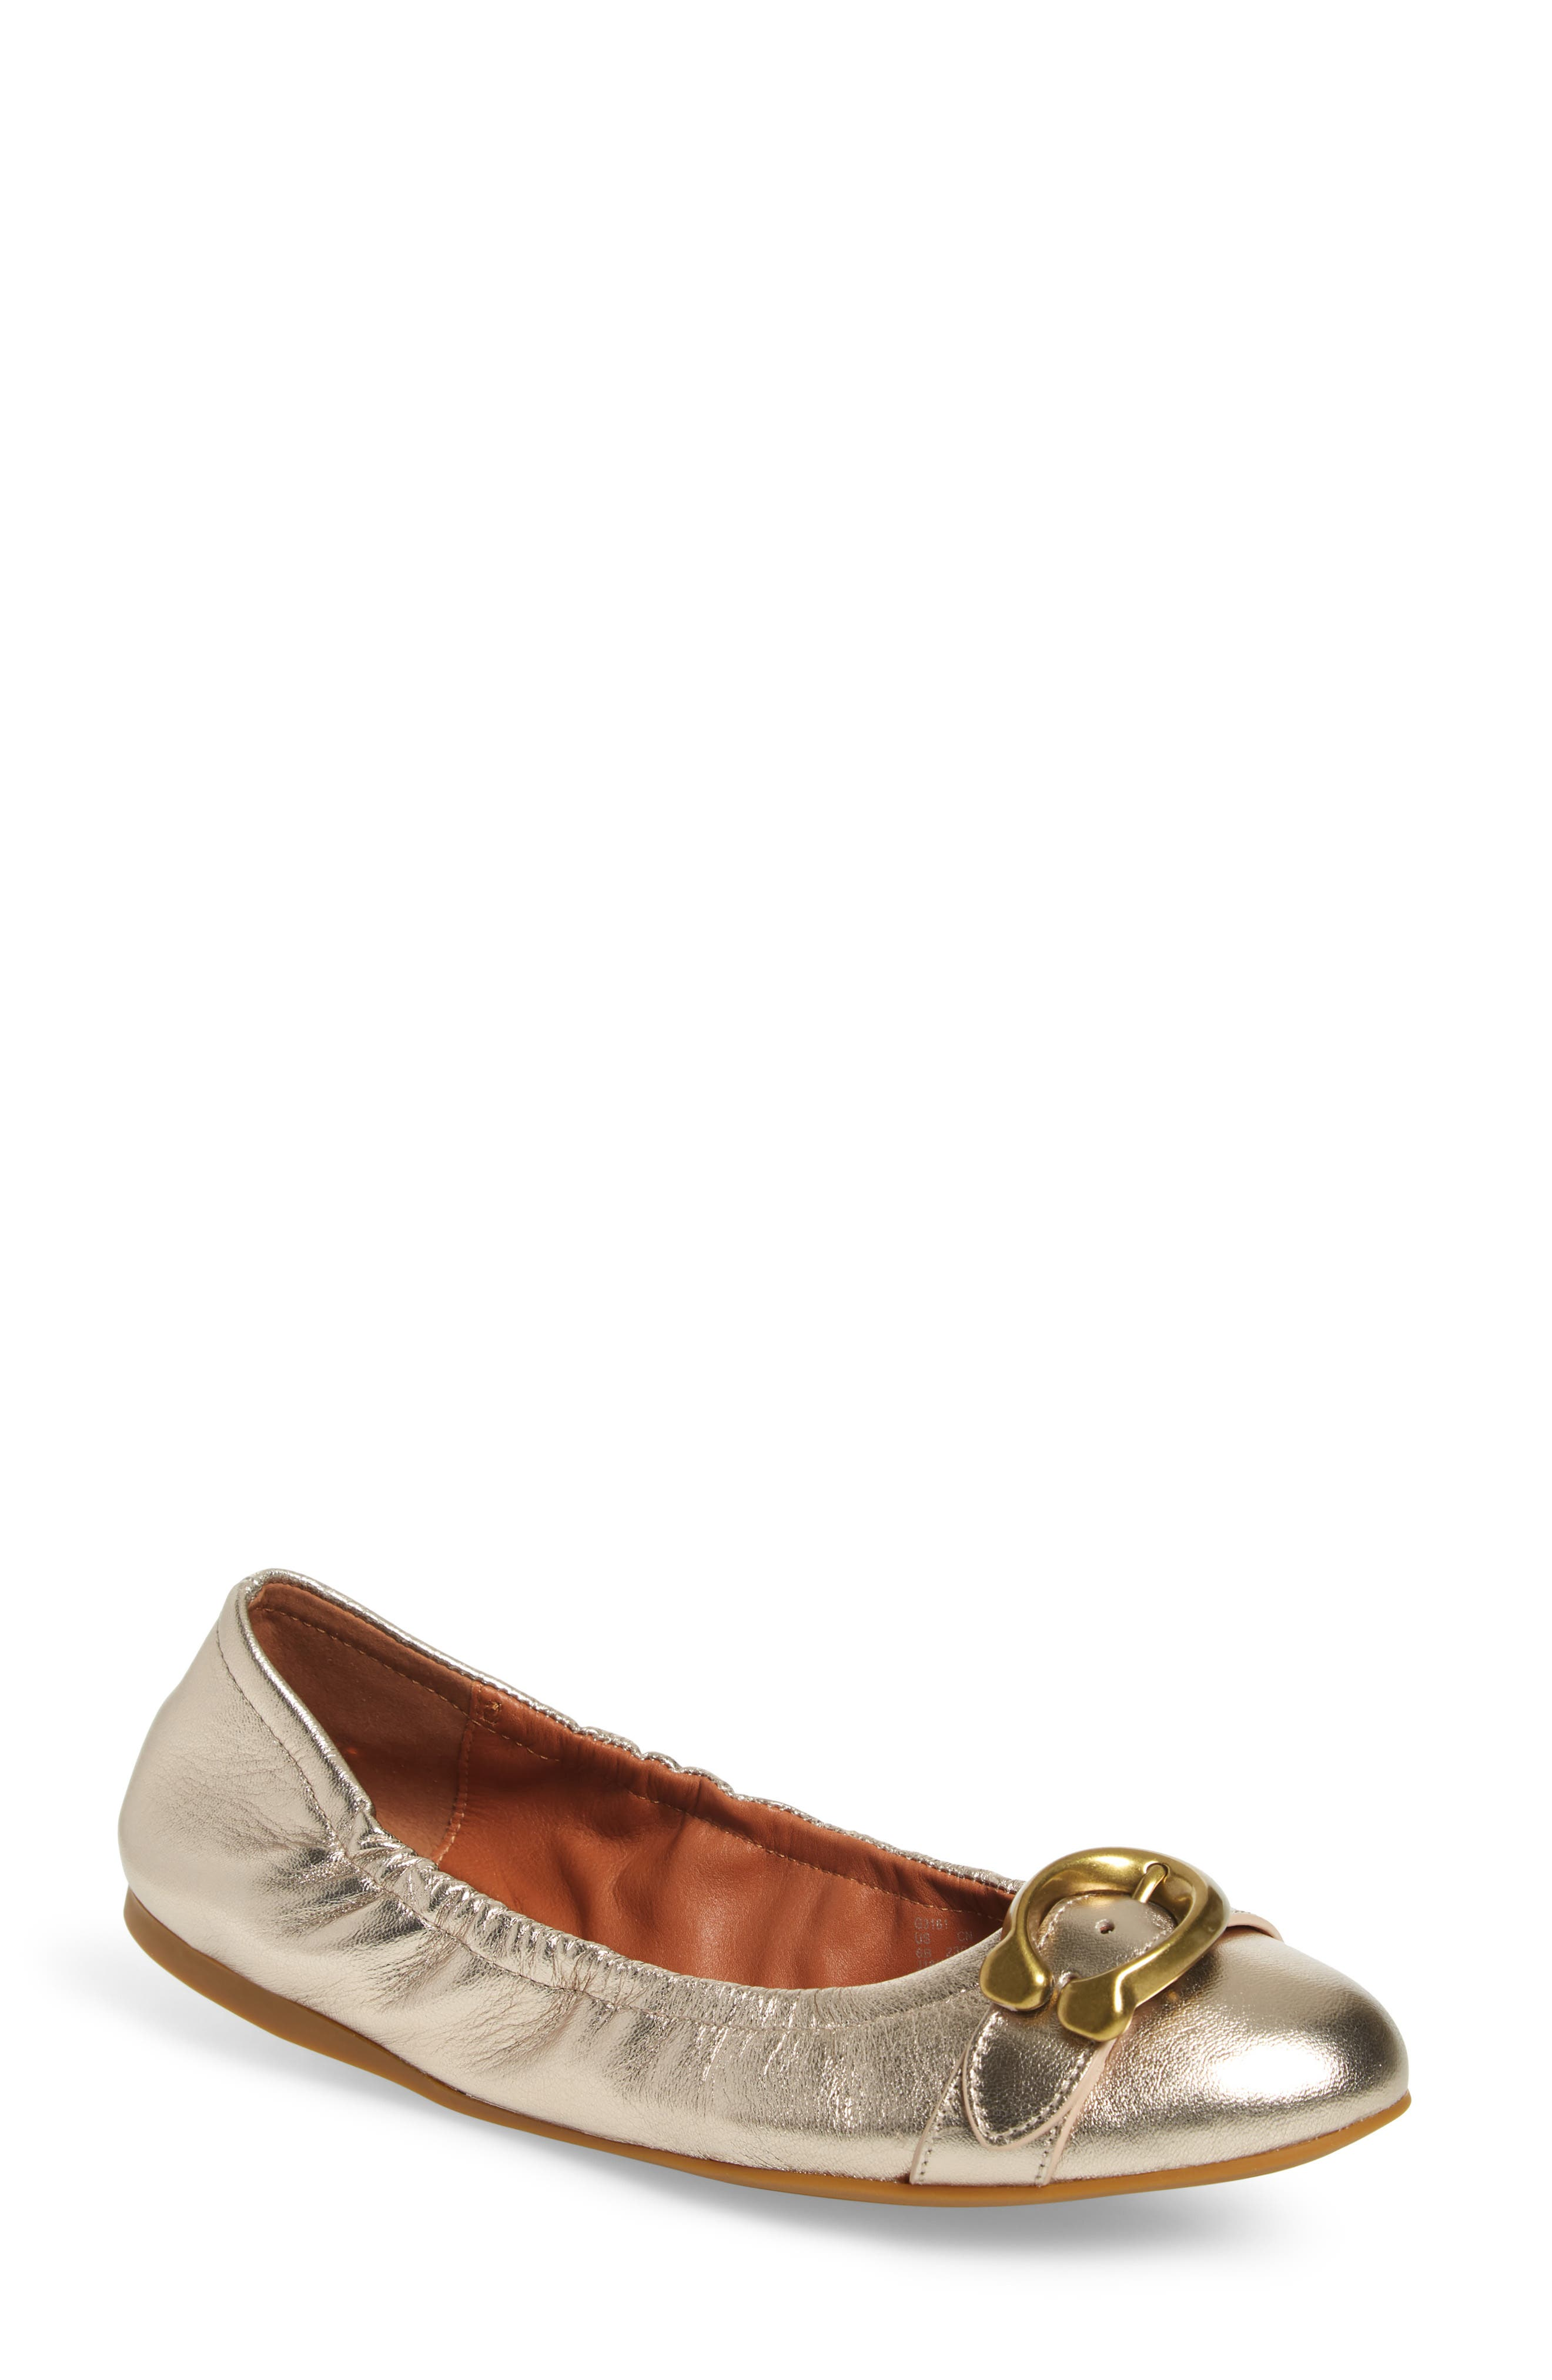 Stanton Buckle Flat,                         Main,                         color, CHAMPAGNE METALLIC LEATHER